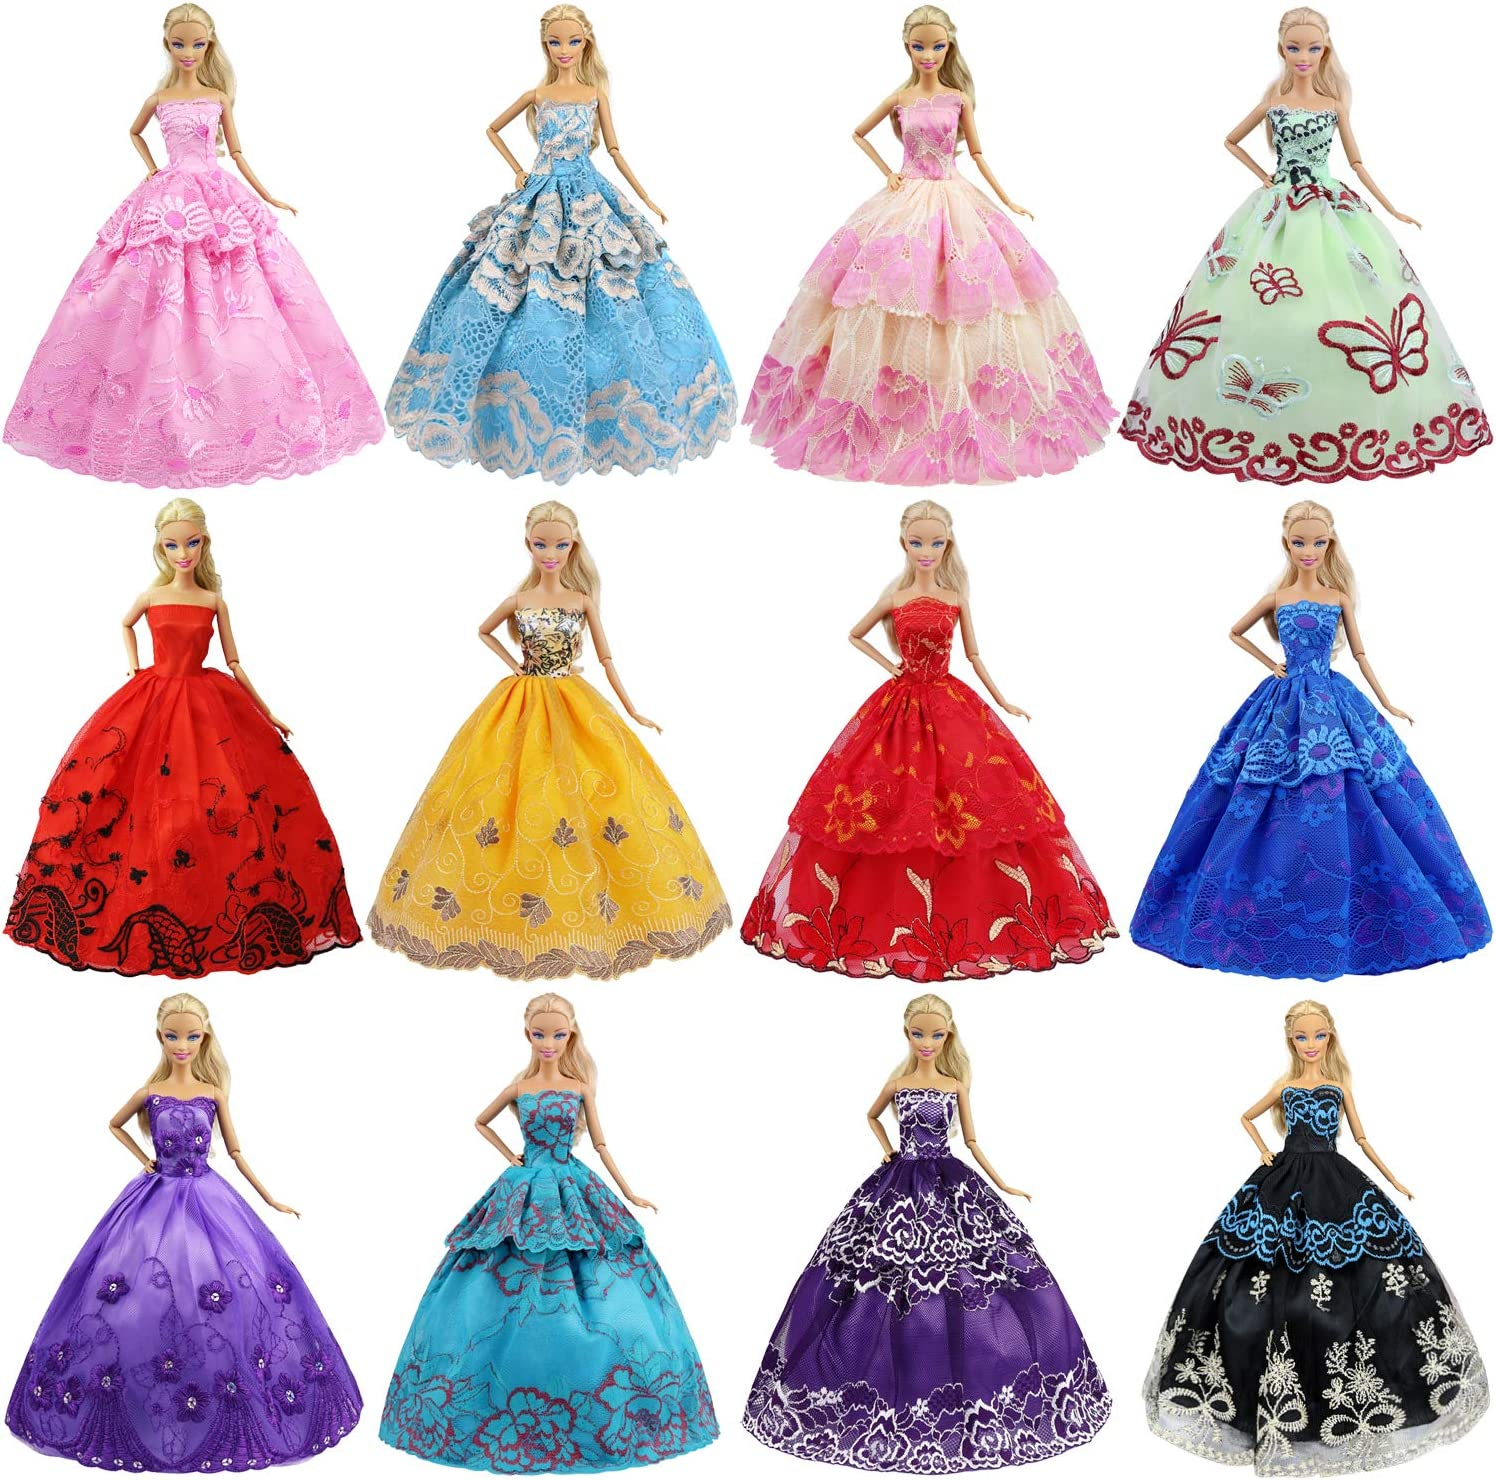 New Handmade For Barbie Dress For Barbie Shoes For Barbie Gown Green Lace Dress